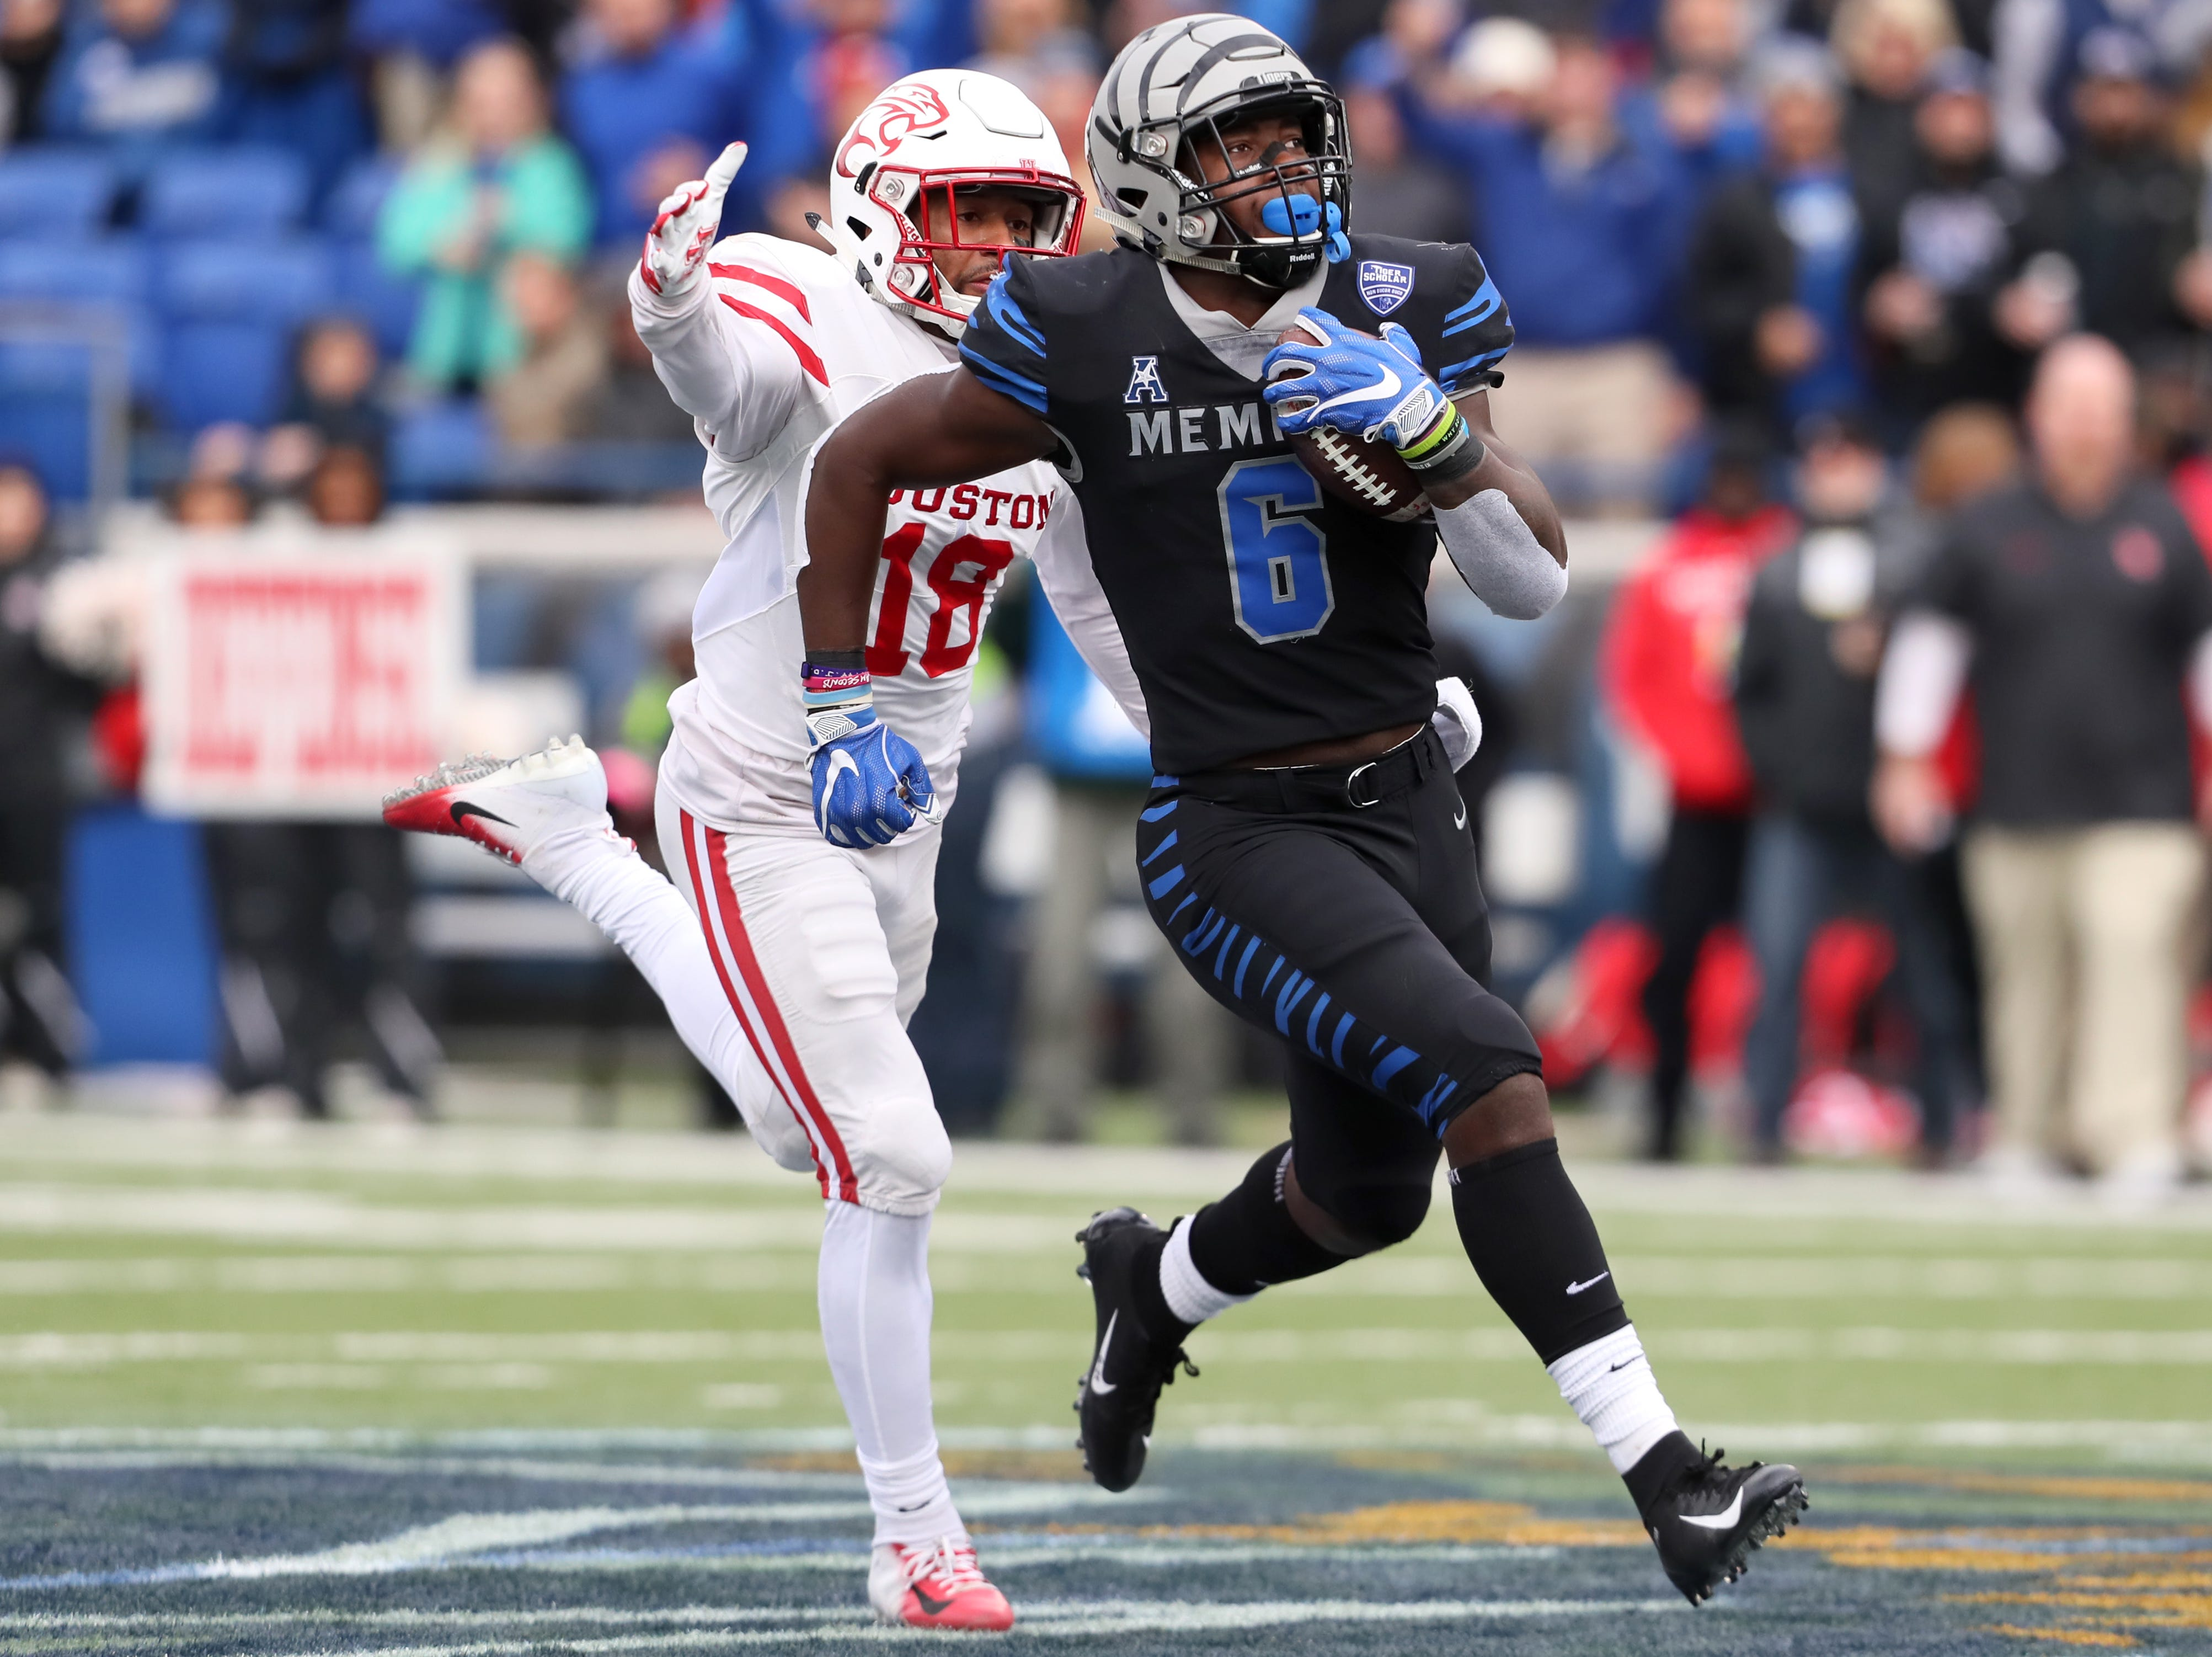 Memphis Tigers' Patrick Taylor Jr. sprints down the field as Houston Cougars defender Alexander Myres chases him down at the Liberty Bowl on Friday, Nov. 23, 2018.